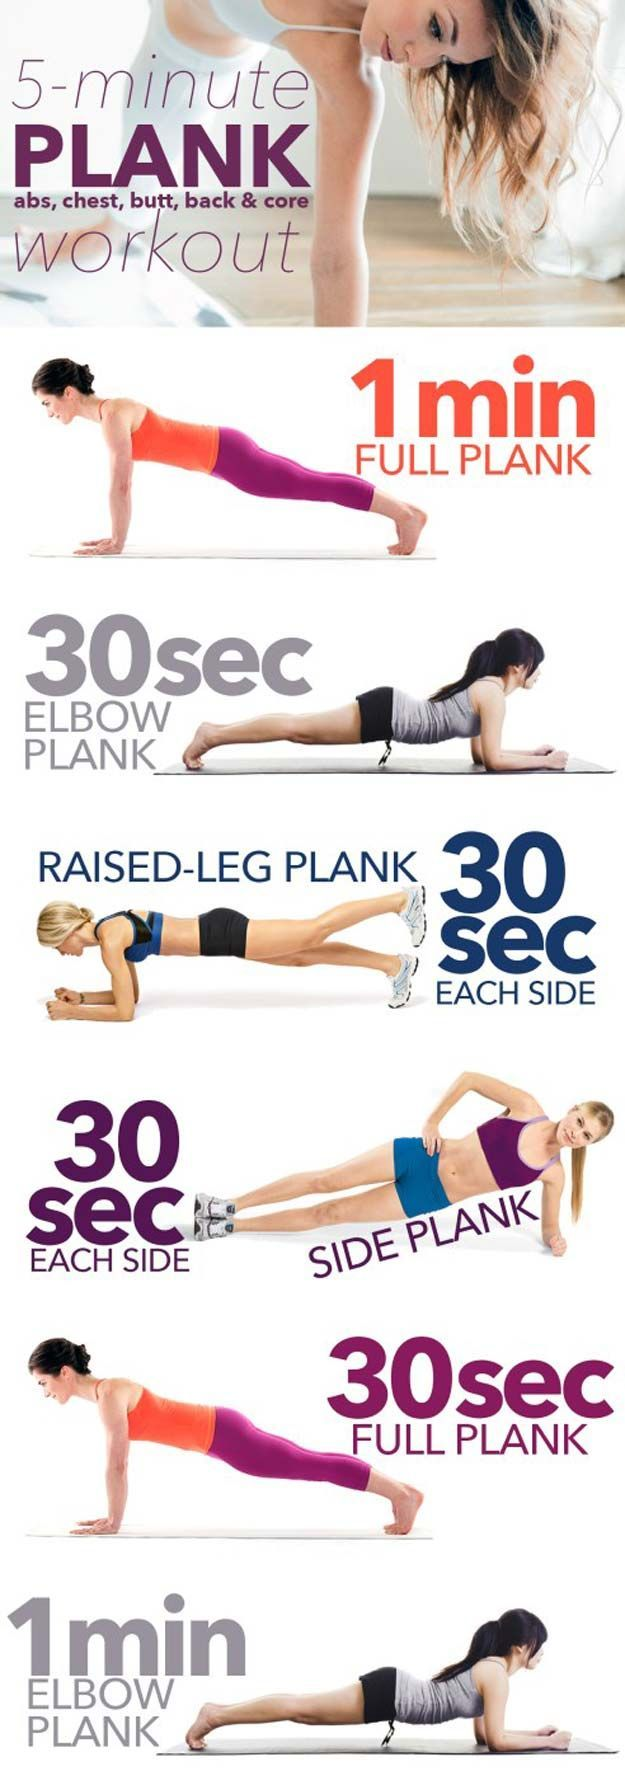 "Five Minute Workouts - 5-minute ""Almost-No-Work"" Plank Workout- Get a Great Full Body - thegoddess.com/five-minute-workouts http://amzn.to/2ssKnYB"